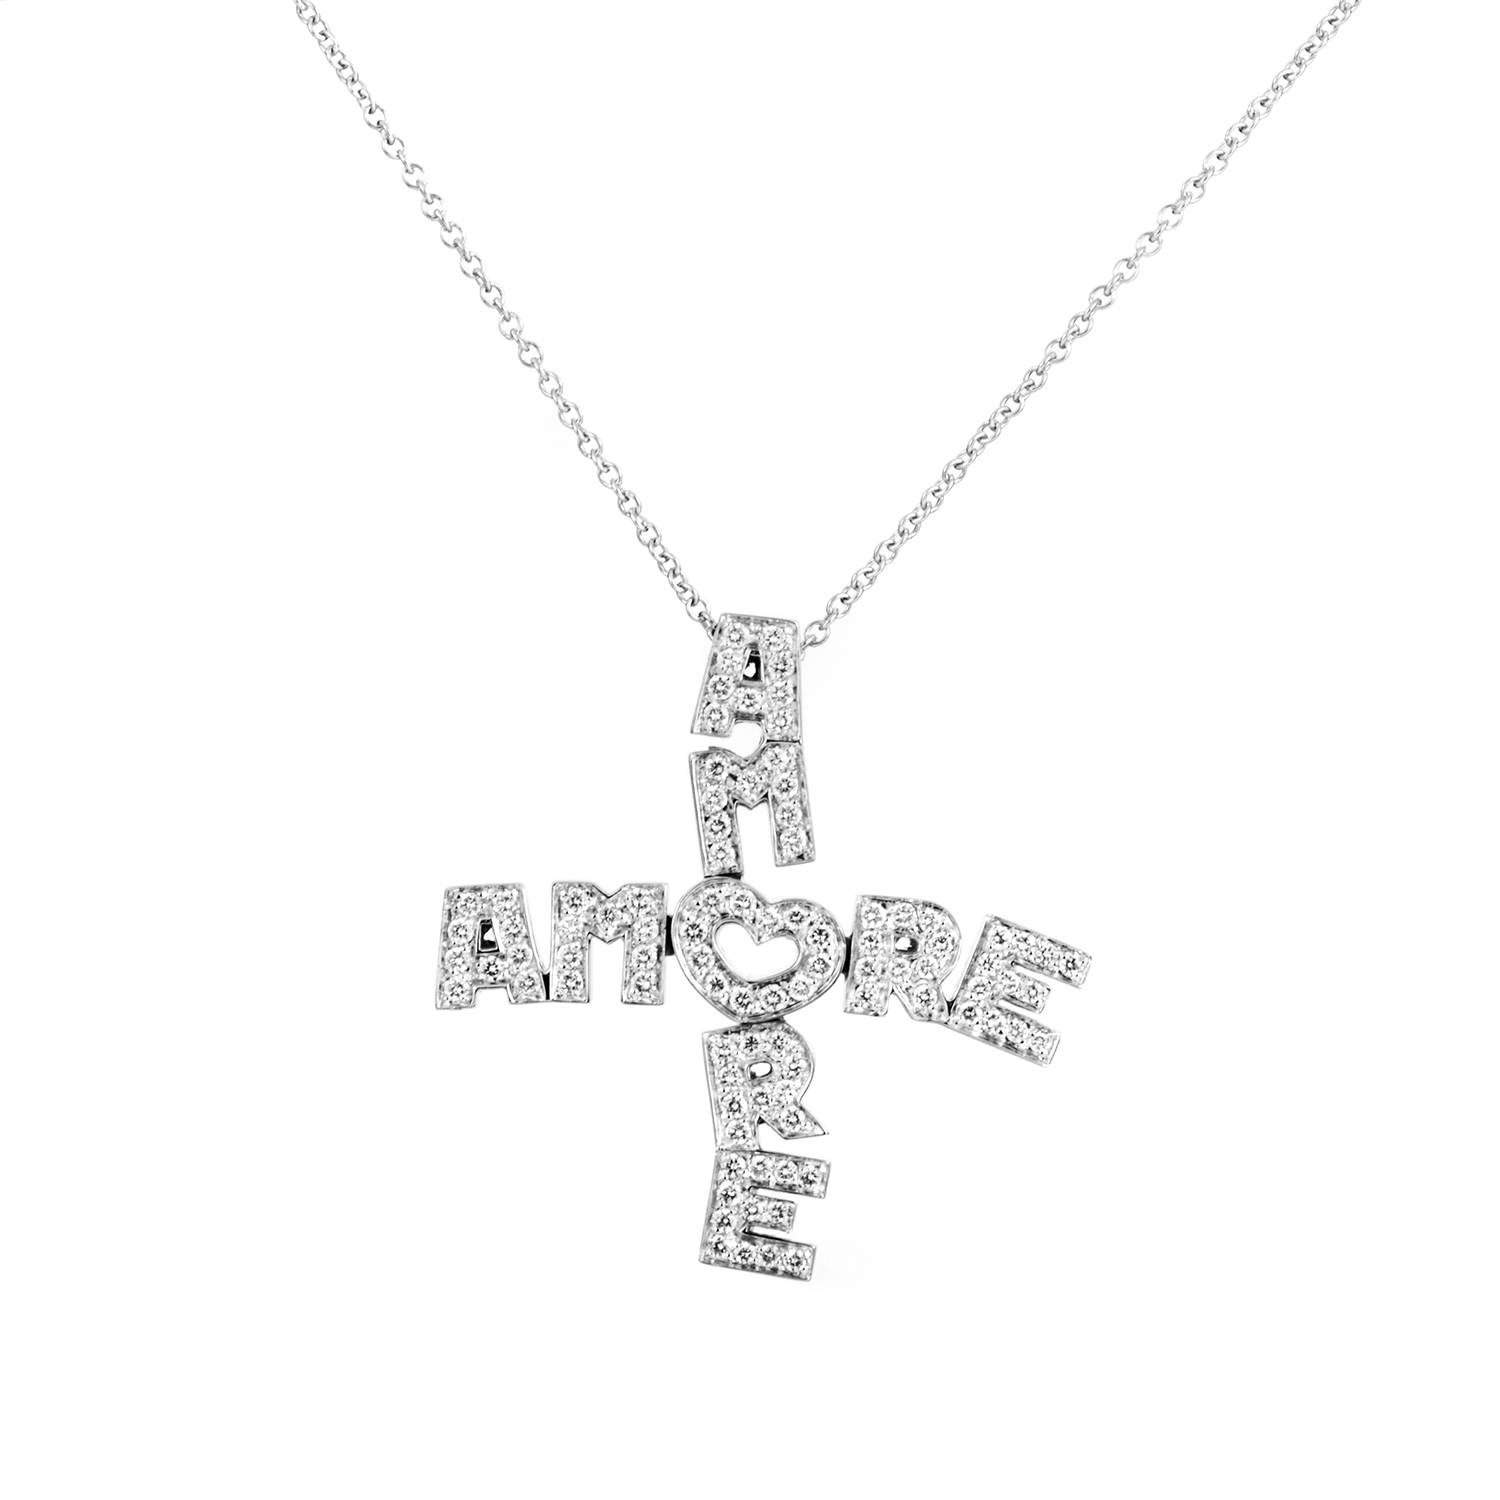 Amore 18K White Gold Diamond Cross Pendant Necklace